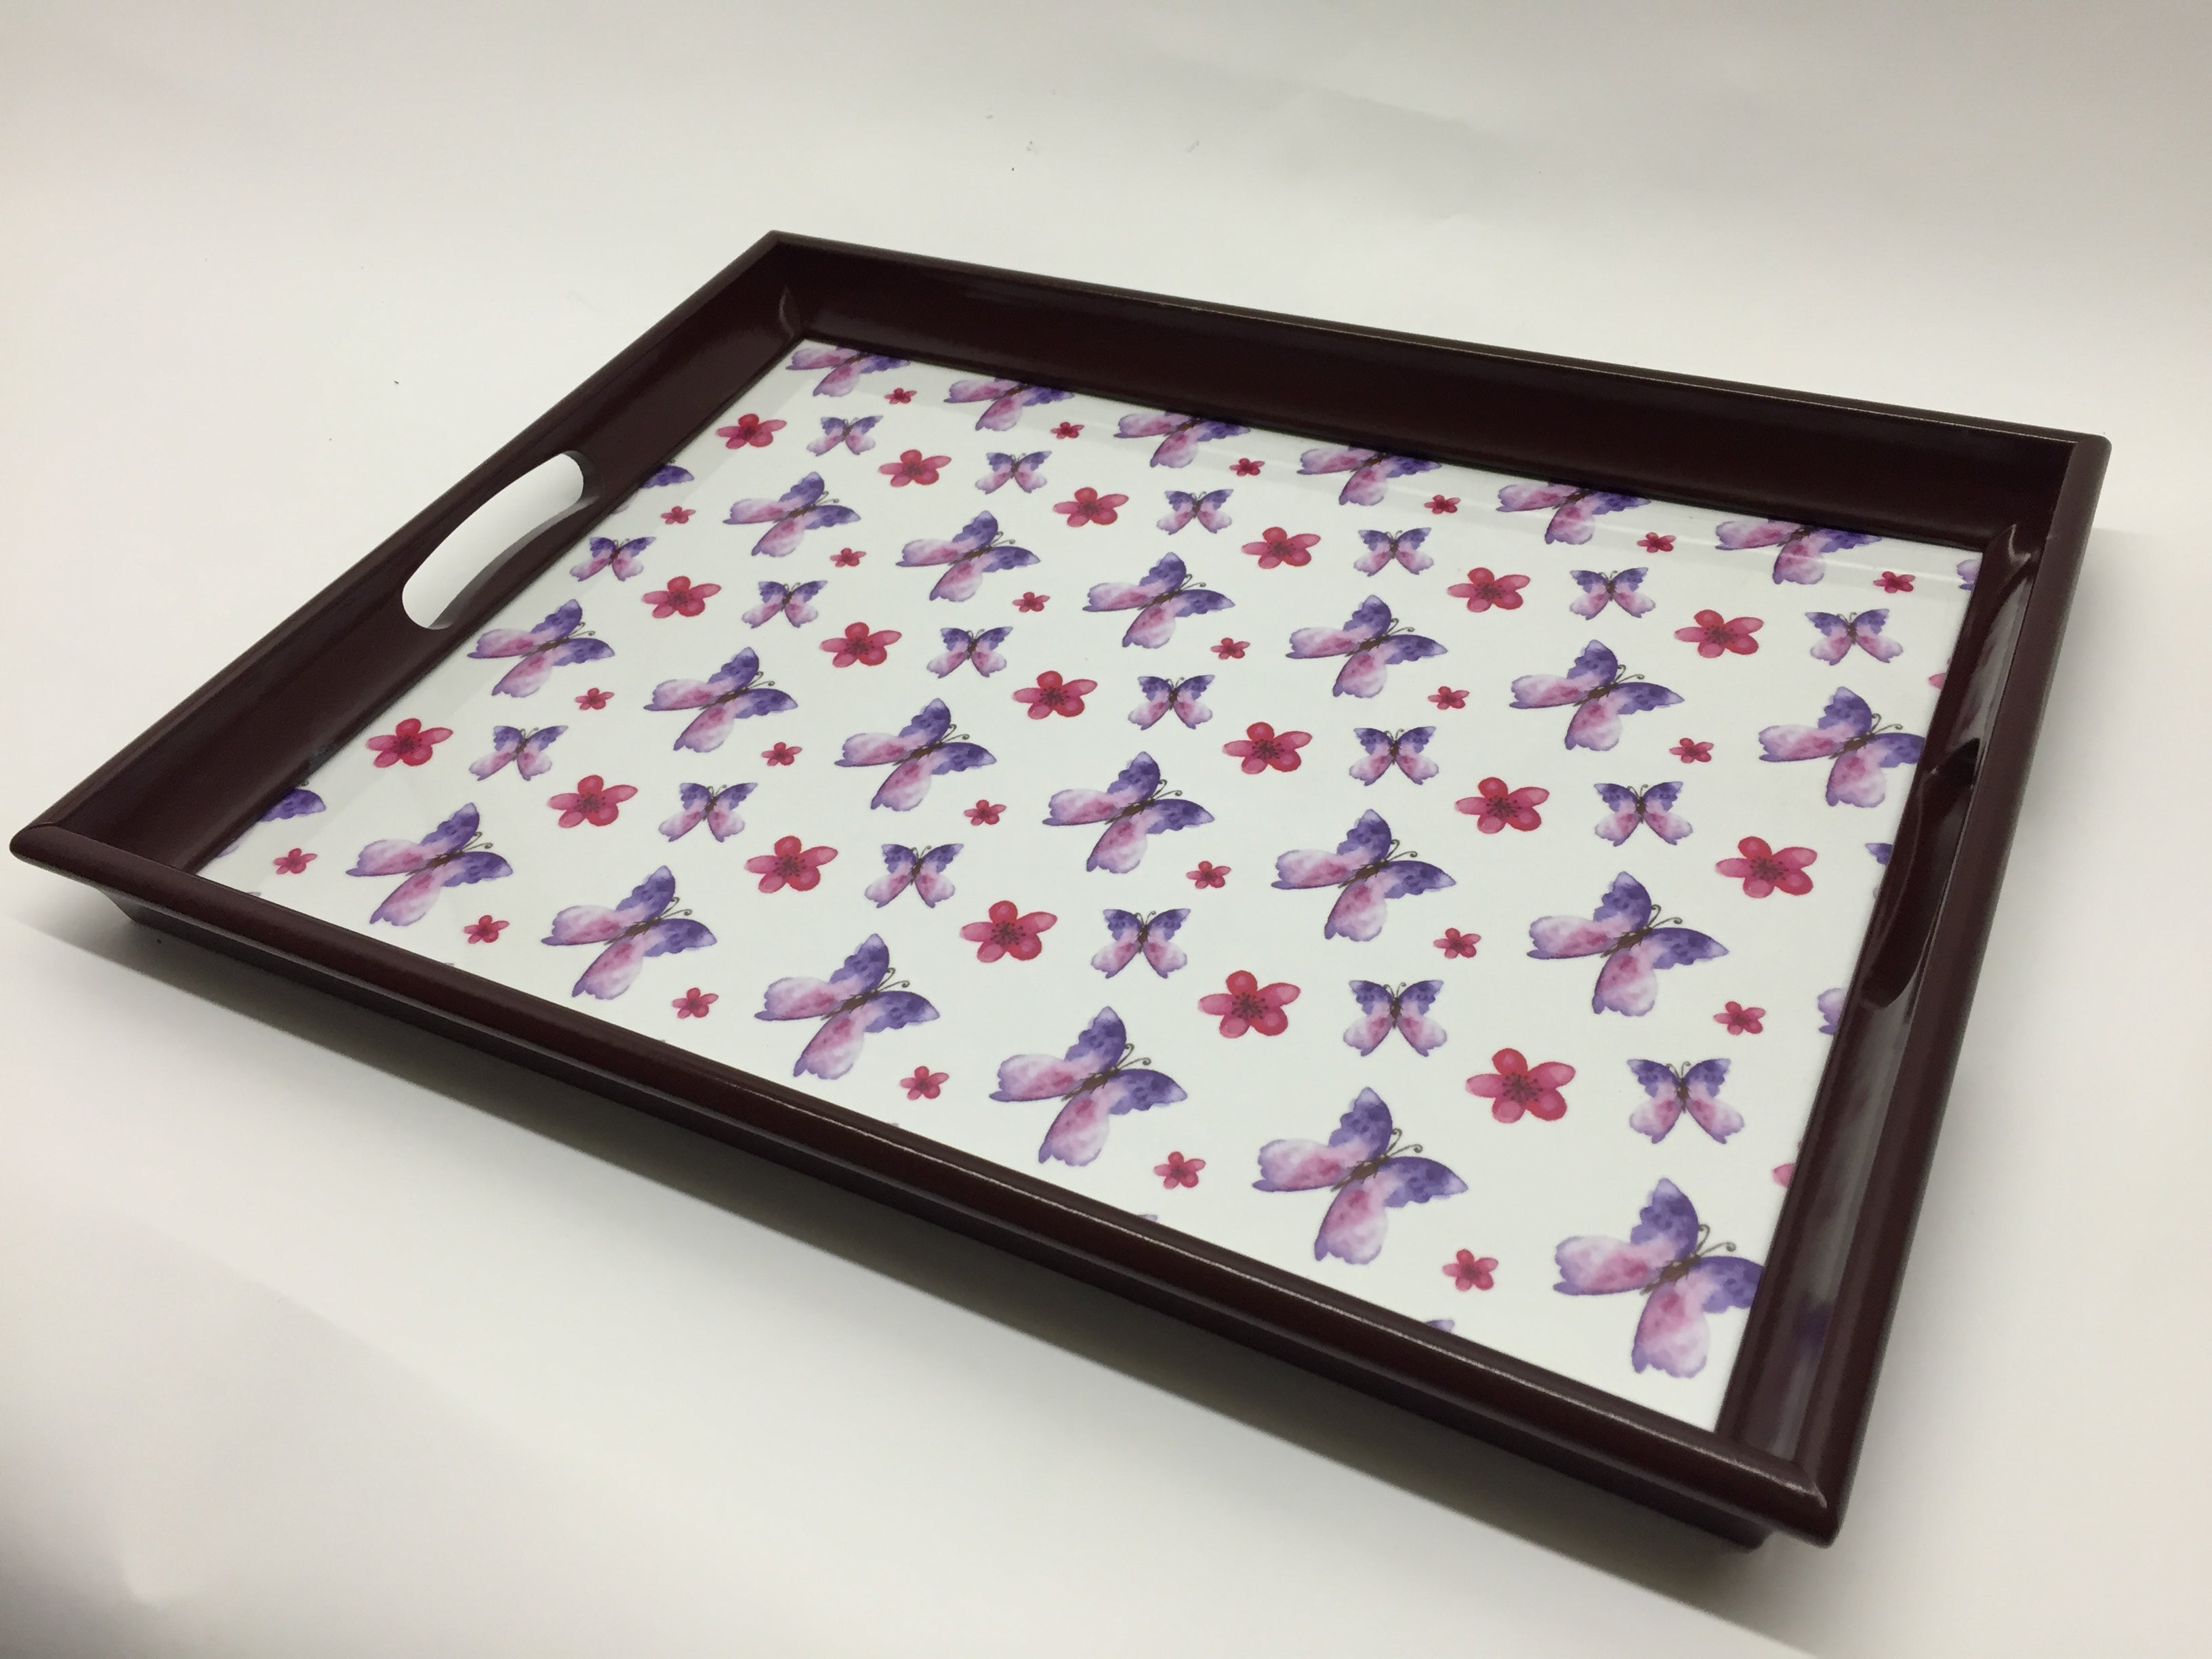 Butterfly Melamine Based Serving Tray